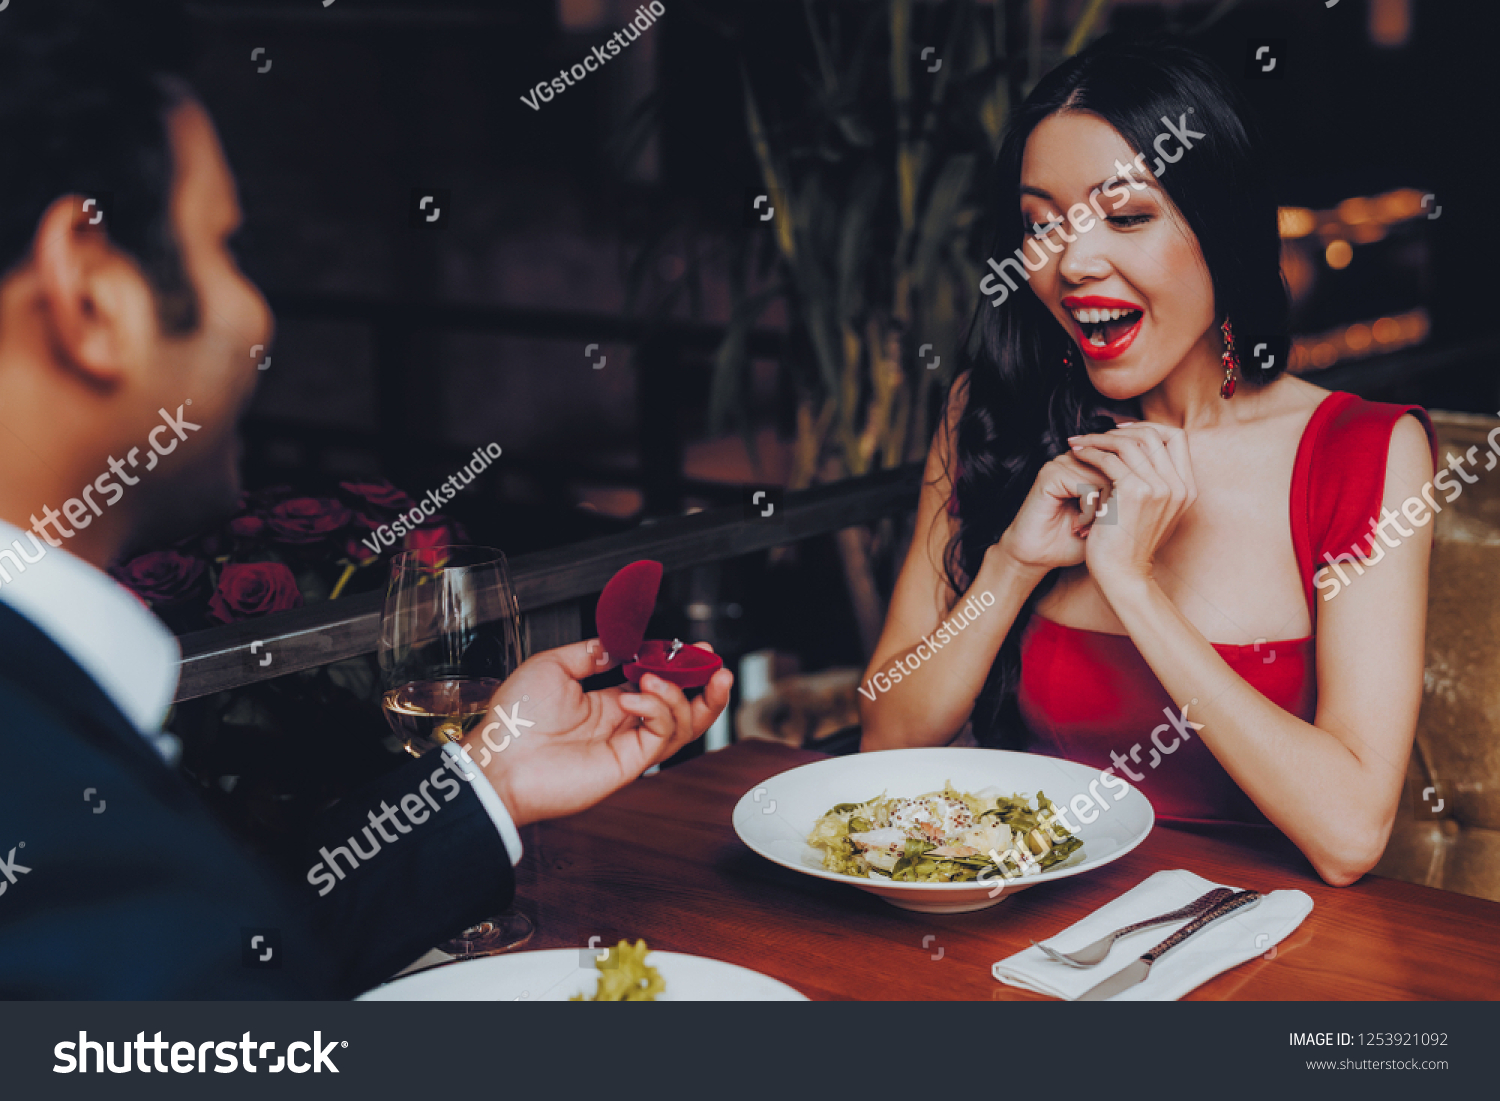 dating a girl who doesent have ajob